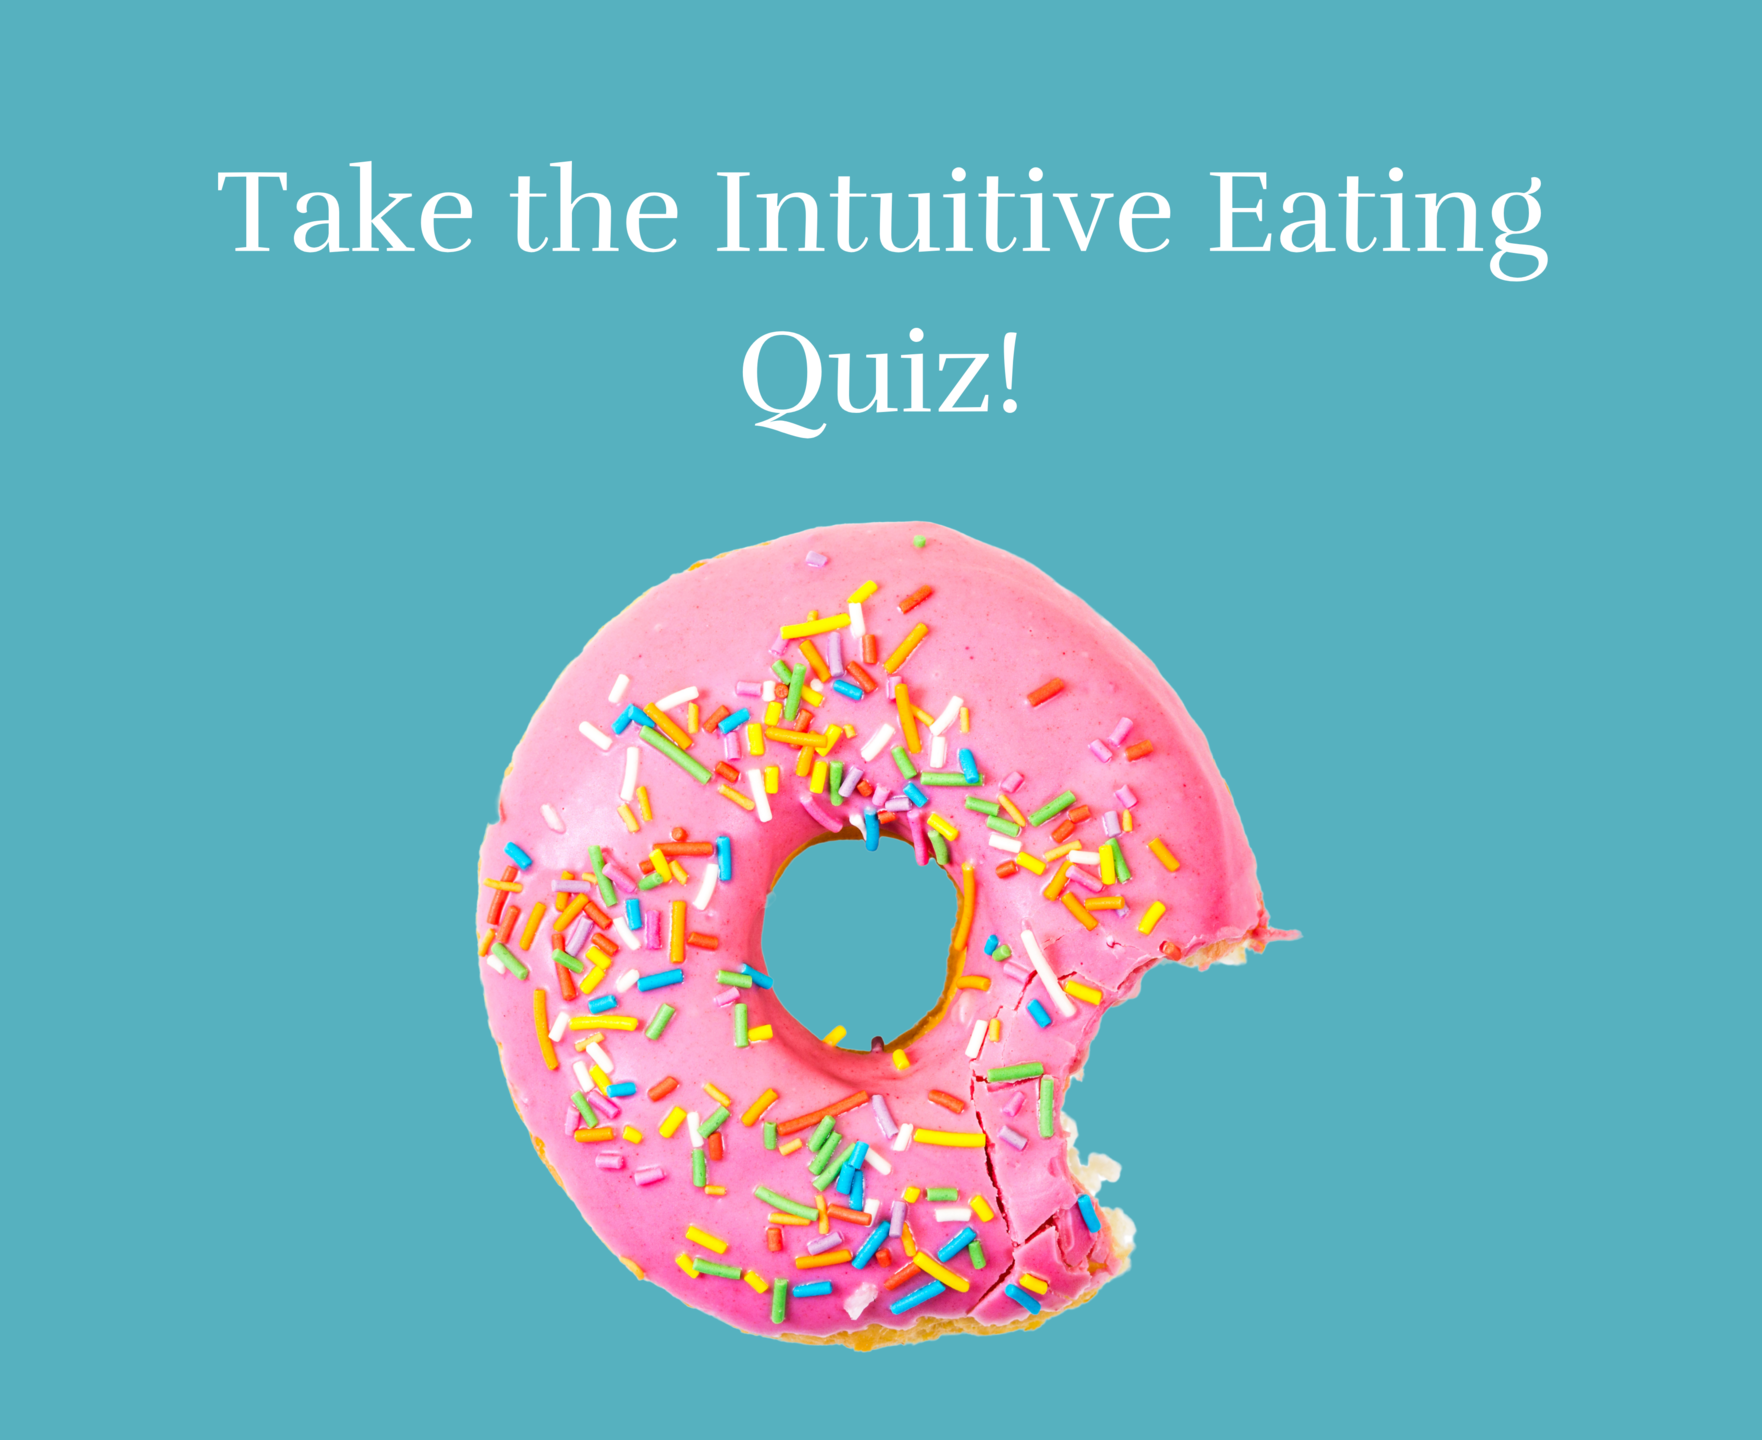 Take the Intuitive Eating Quiz!